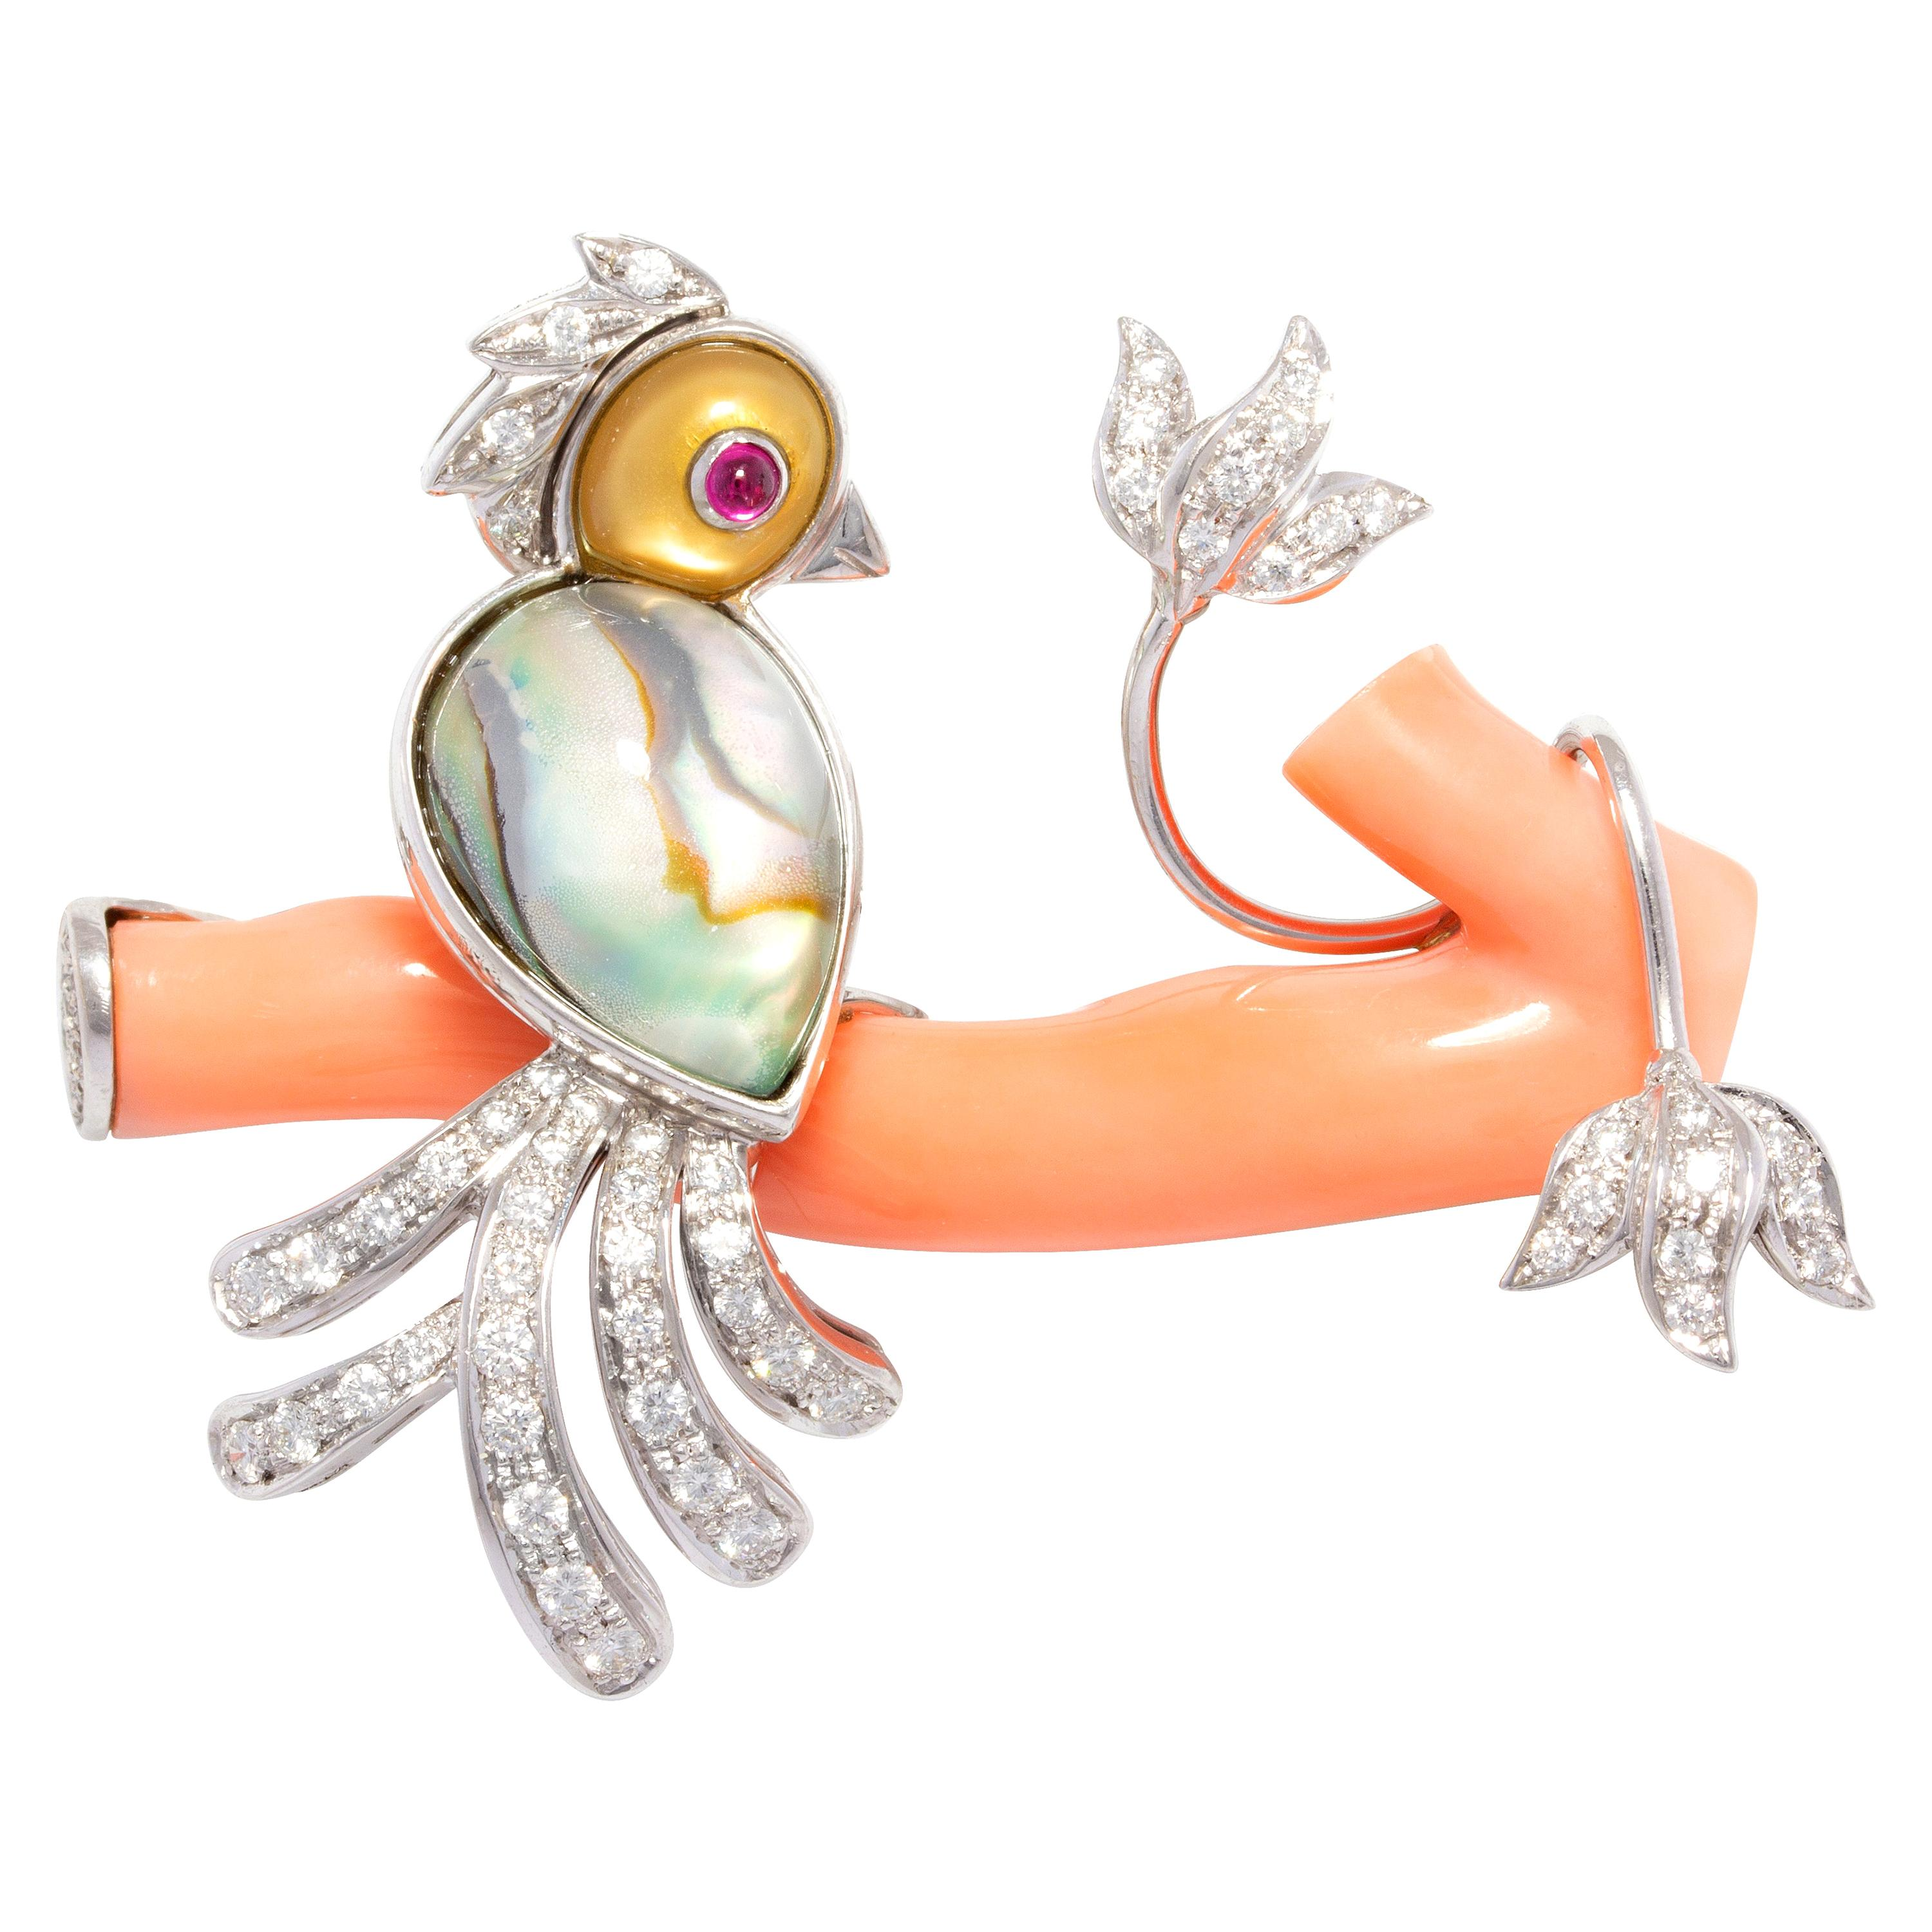 Ella Gafter Love Bird Diamond Brooch Pin